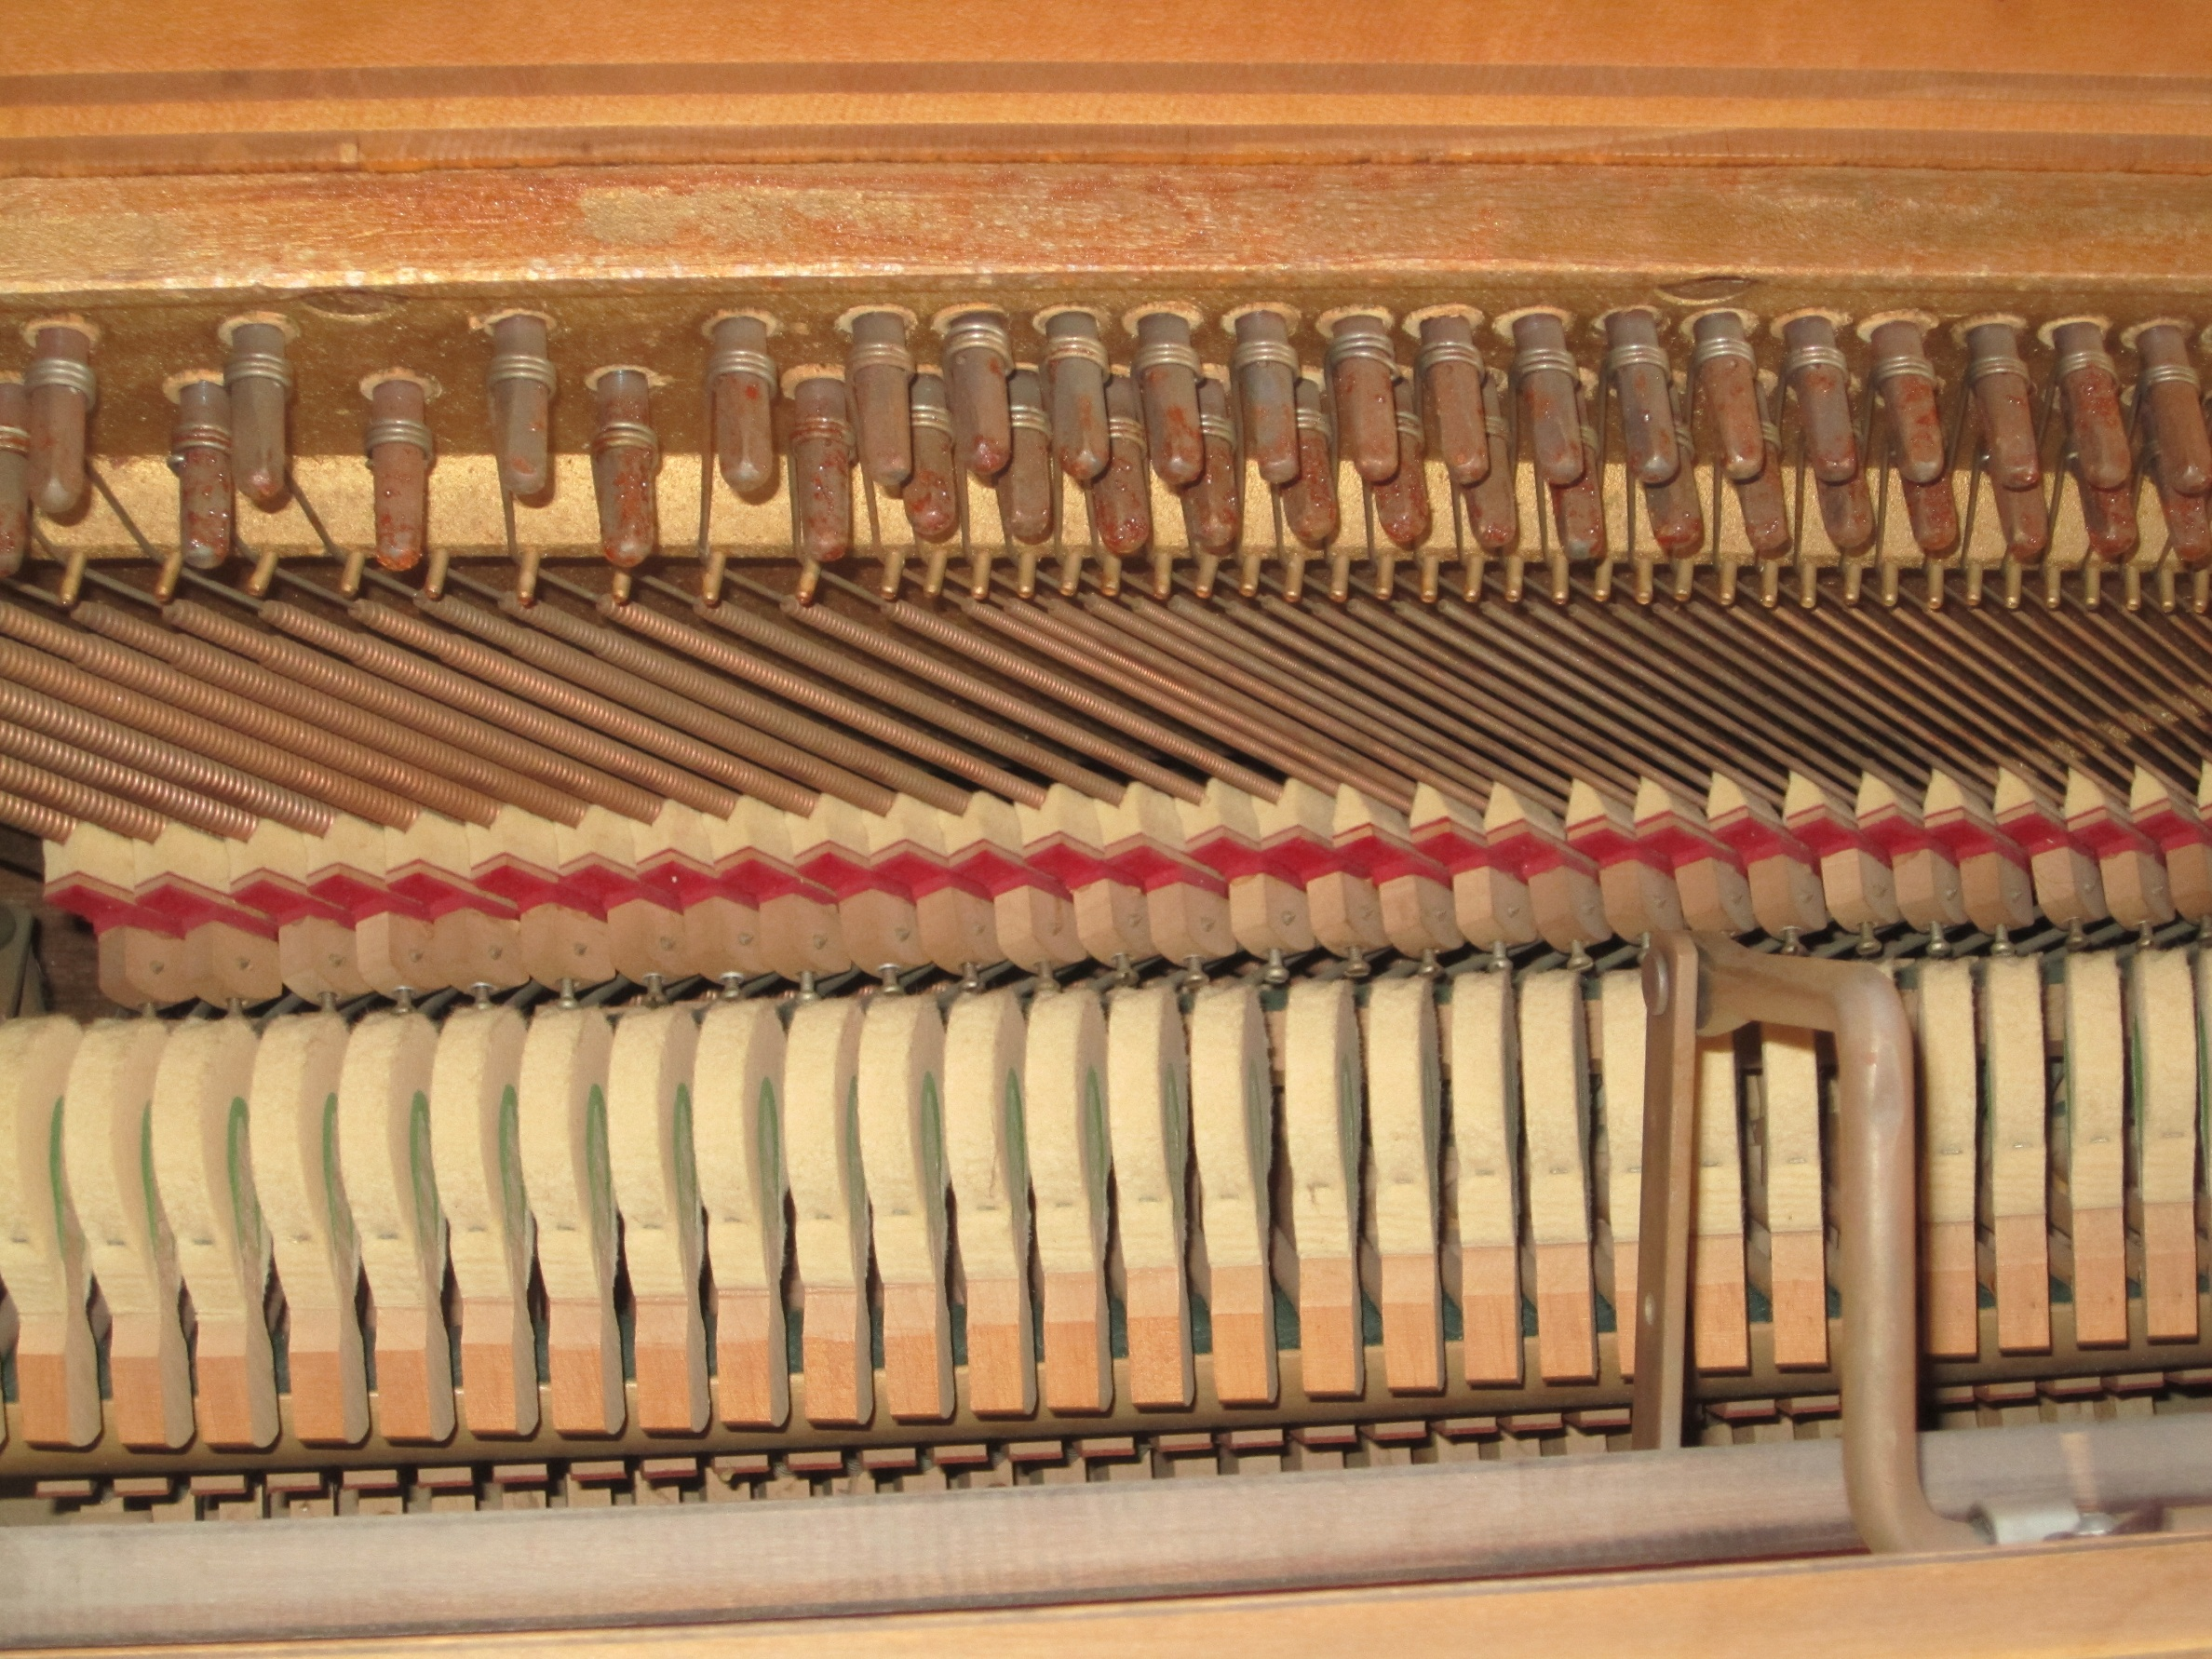 upright piano for sale in toledo   Marketing Your Business